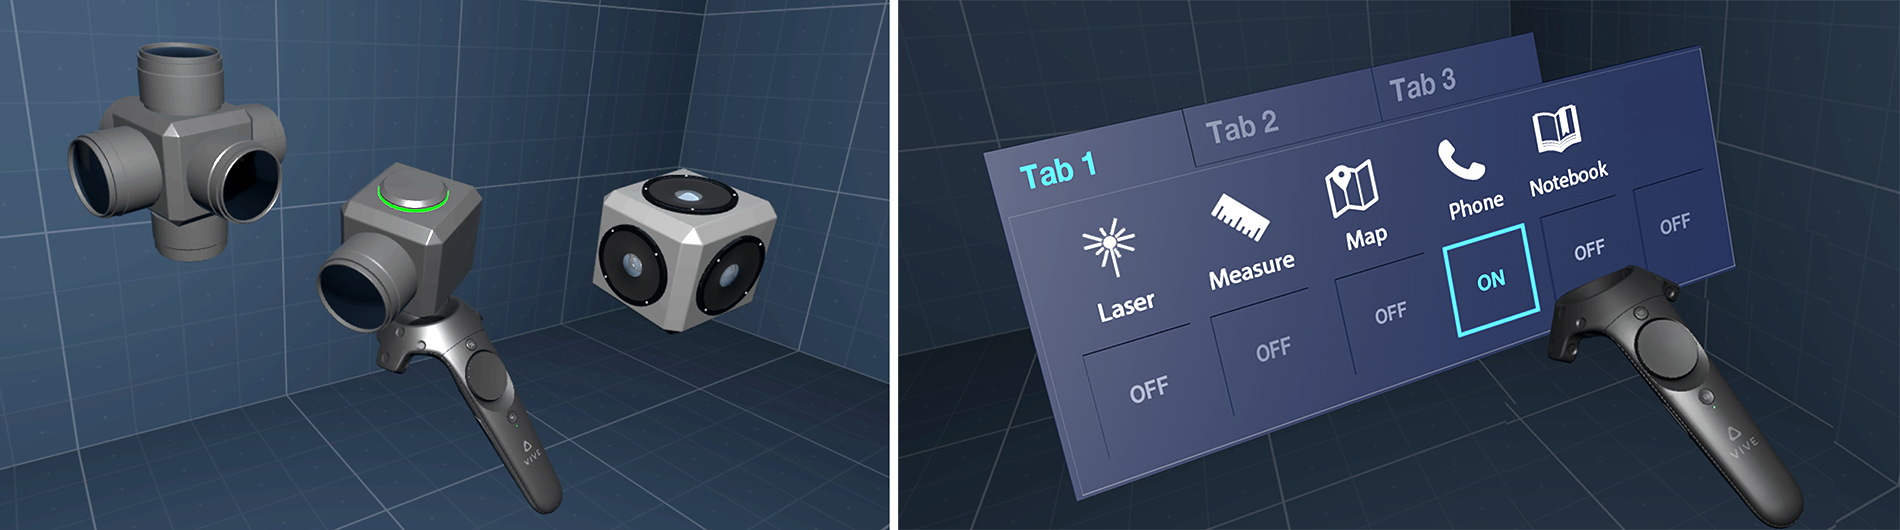 3D sketch objects created in Solidworks to enable fast prototyping and testing of UI components